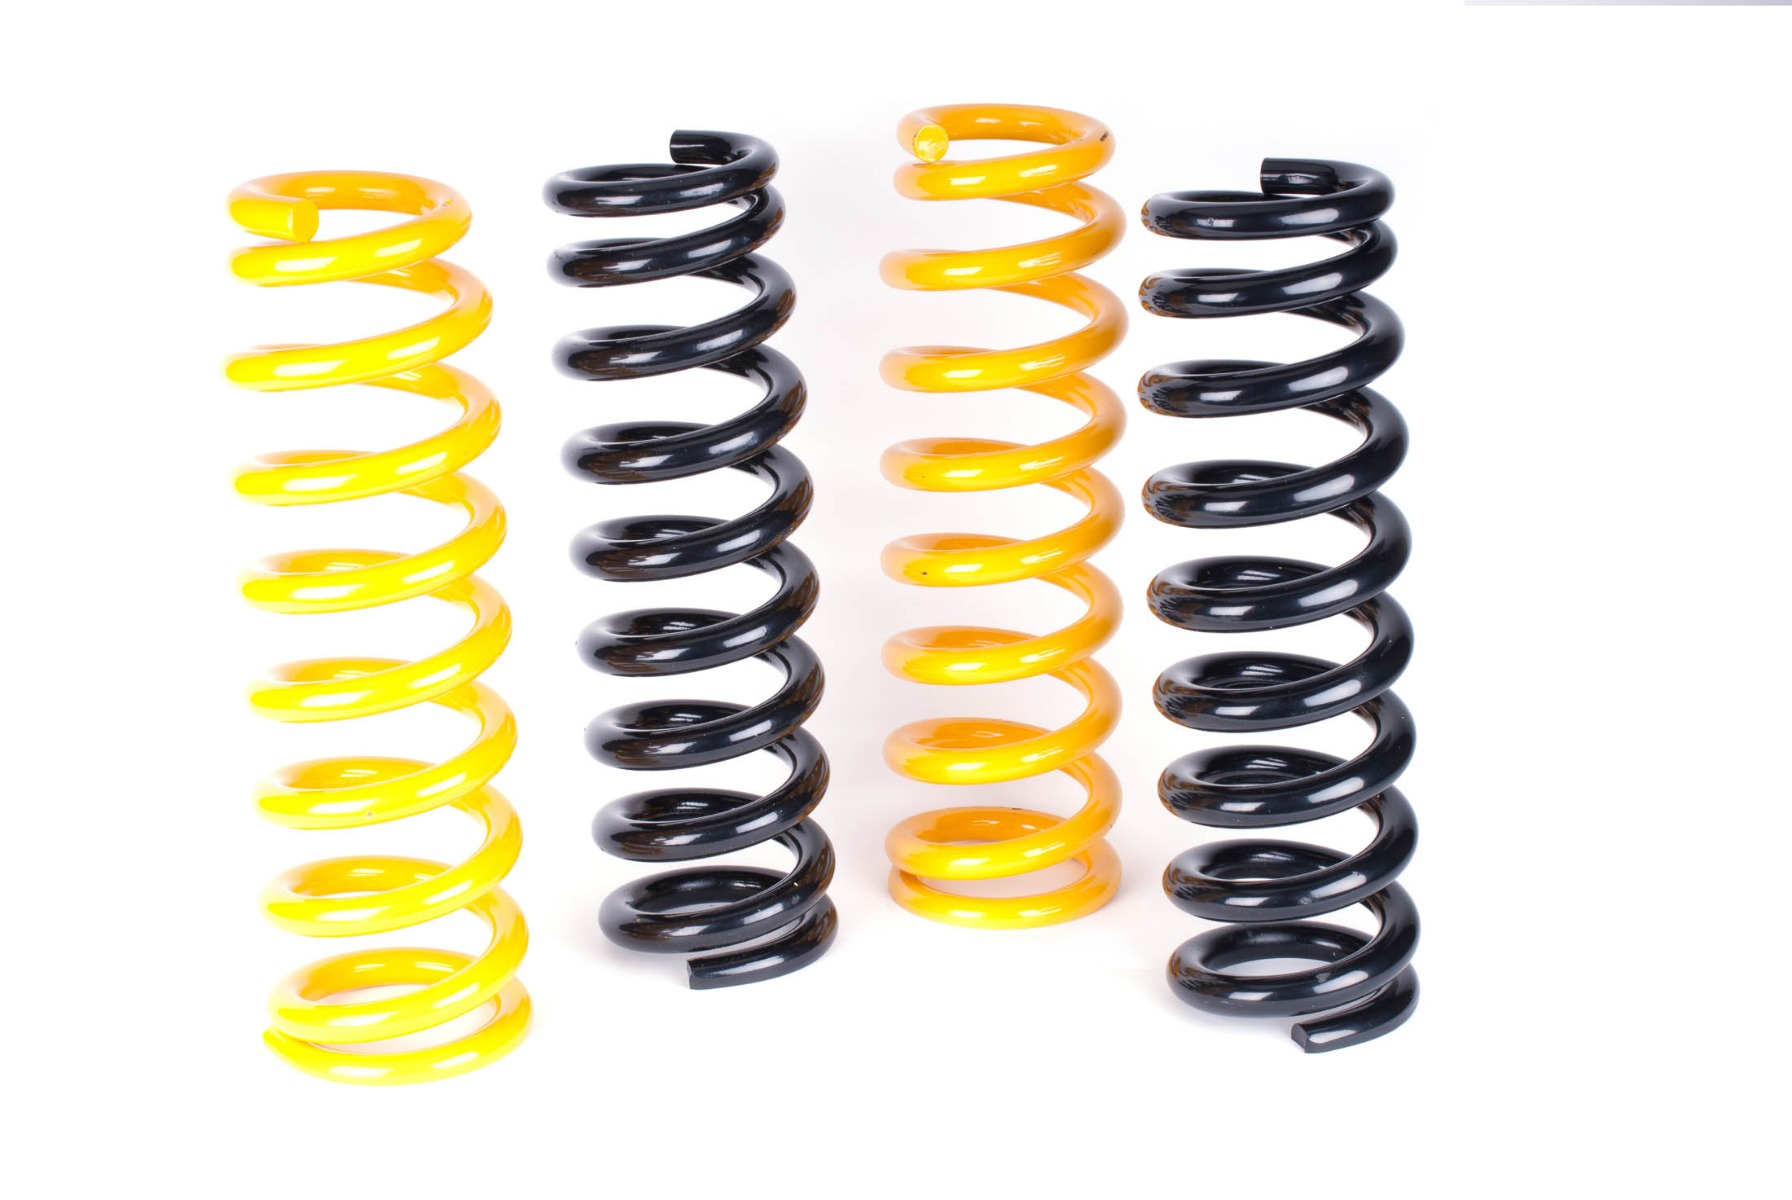 VMN offers a wide range of coil springs that fits your budget, suspension kit manufacturer, and your vehicle's load carrying ability.